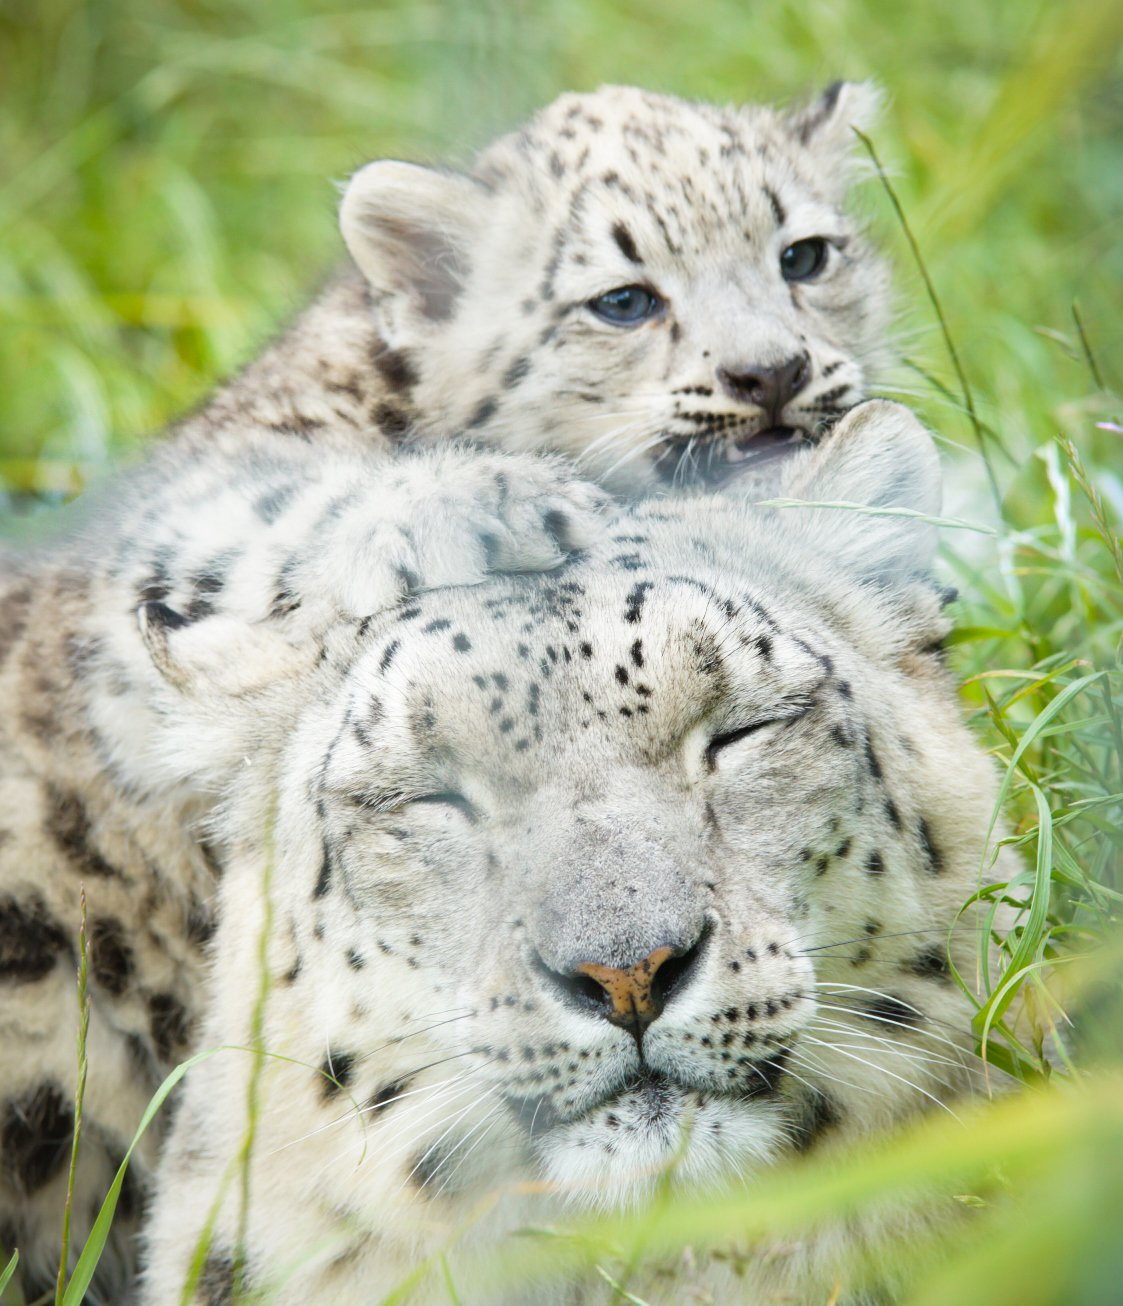 #cuteanimaltweetoff This is when one of our Snow Leopard cubs was still a cub! @KnowsleySafari @BristolZooGdns @BlackpoolZoo https://t.co/yf6kz5gJ2a